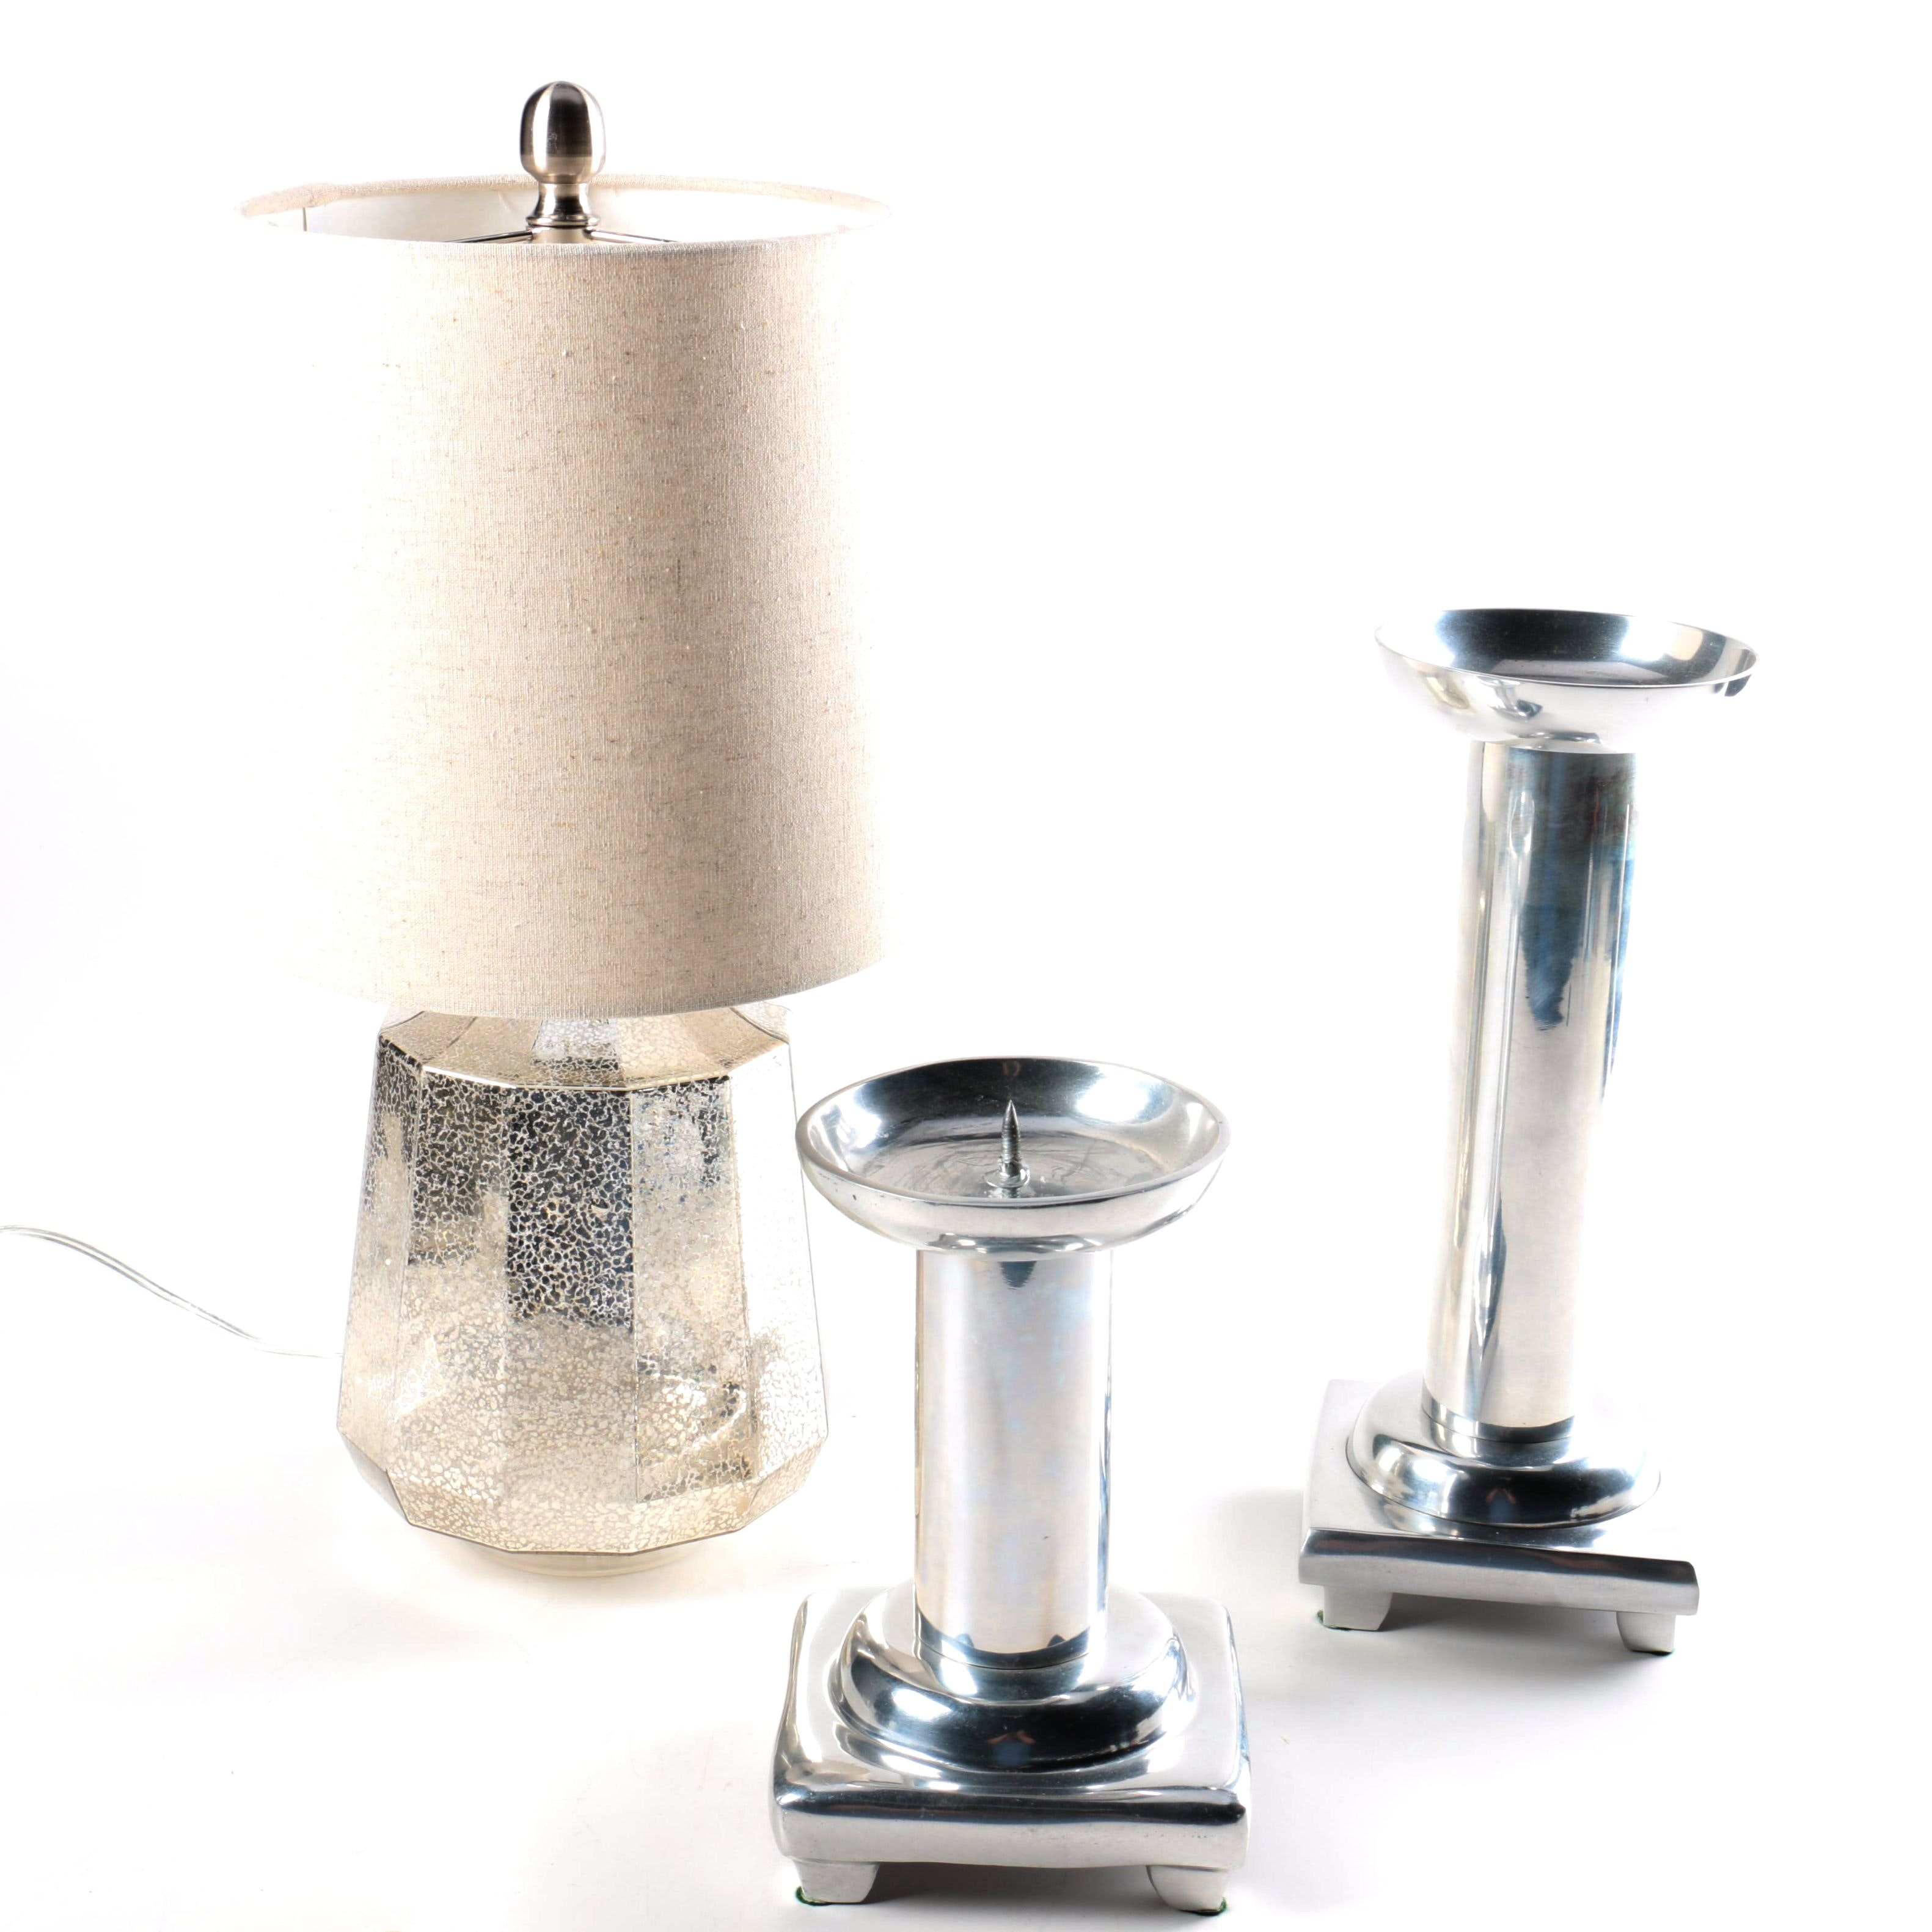 Mirrored Glass Table Lamp and Metal Candleholders